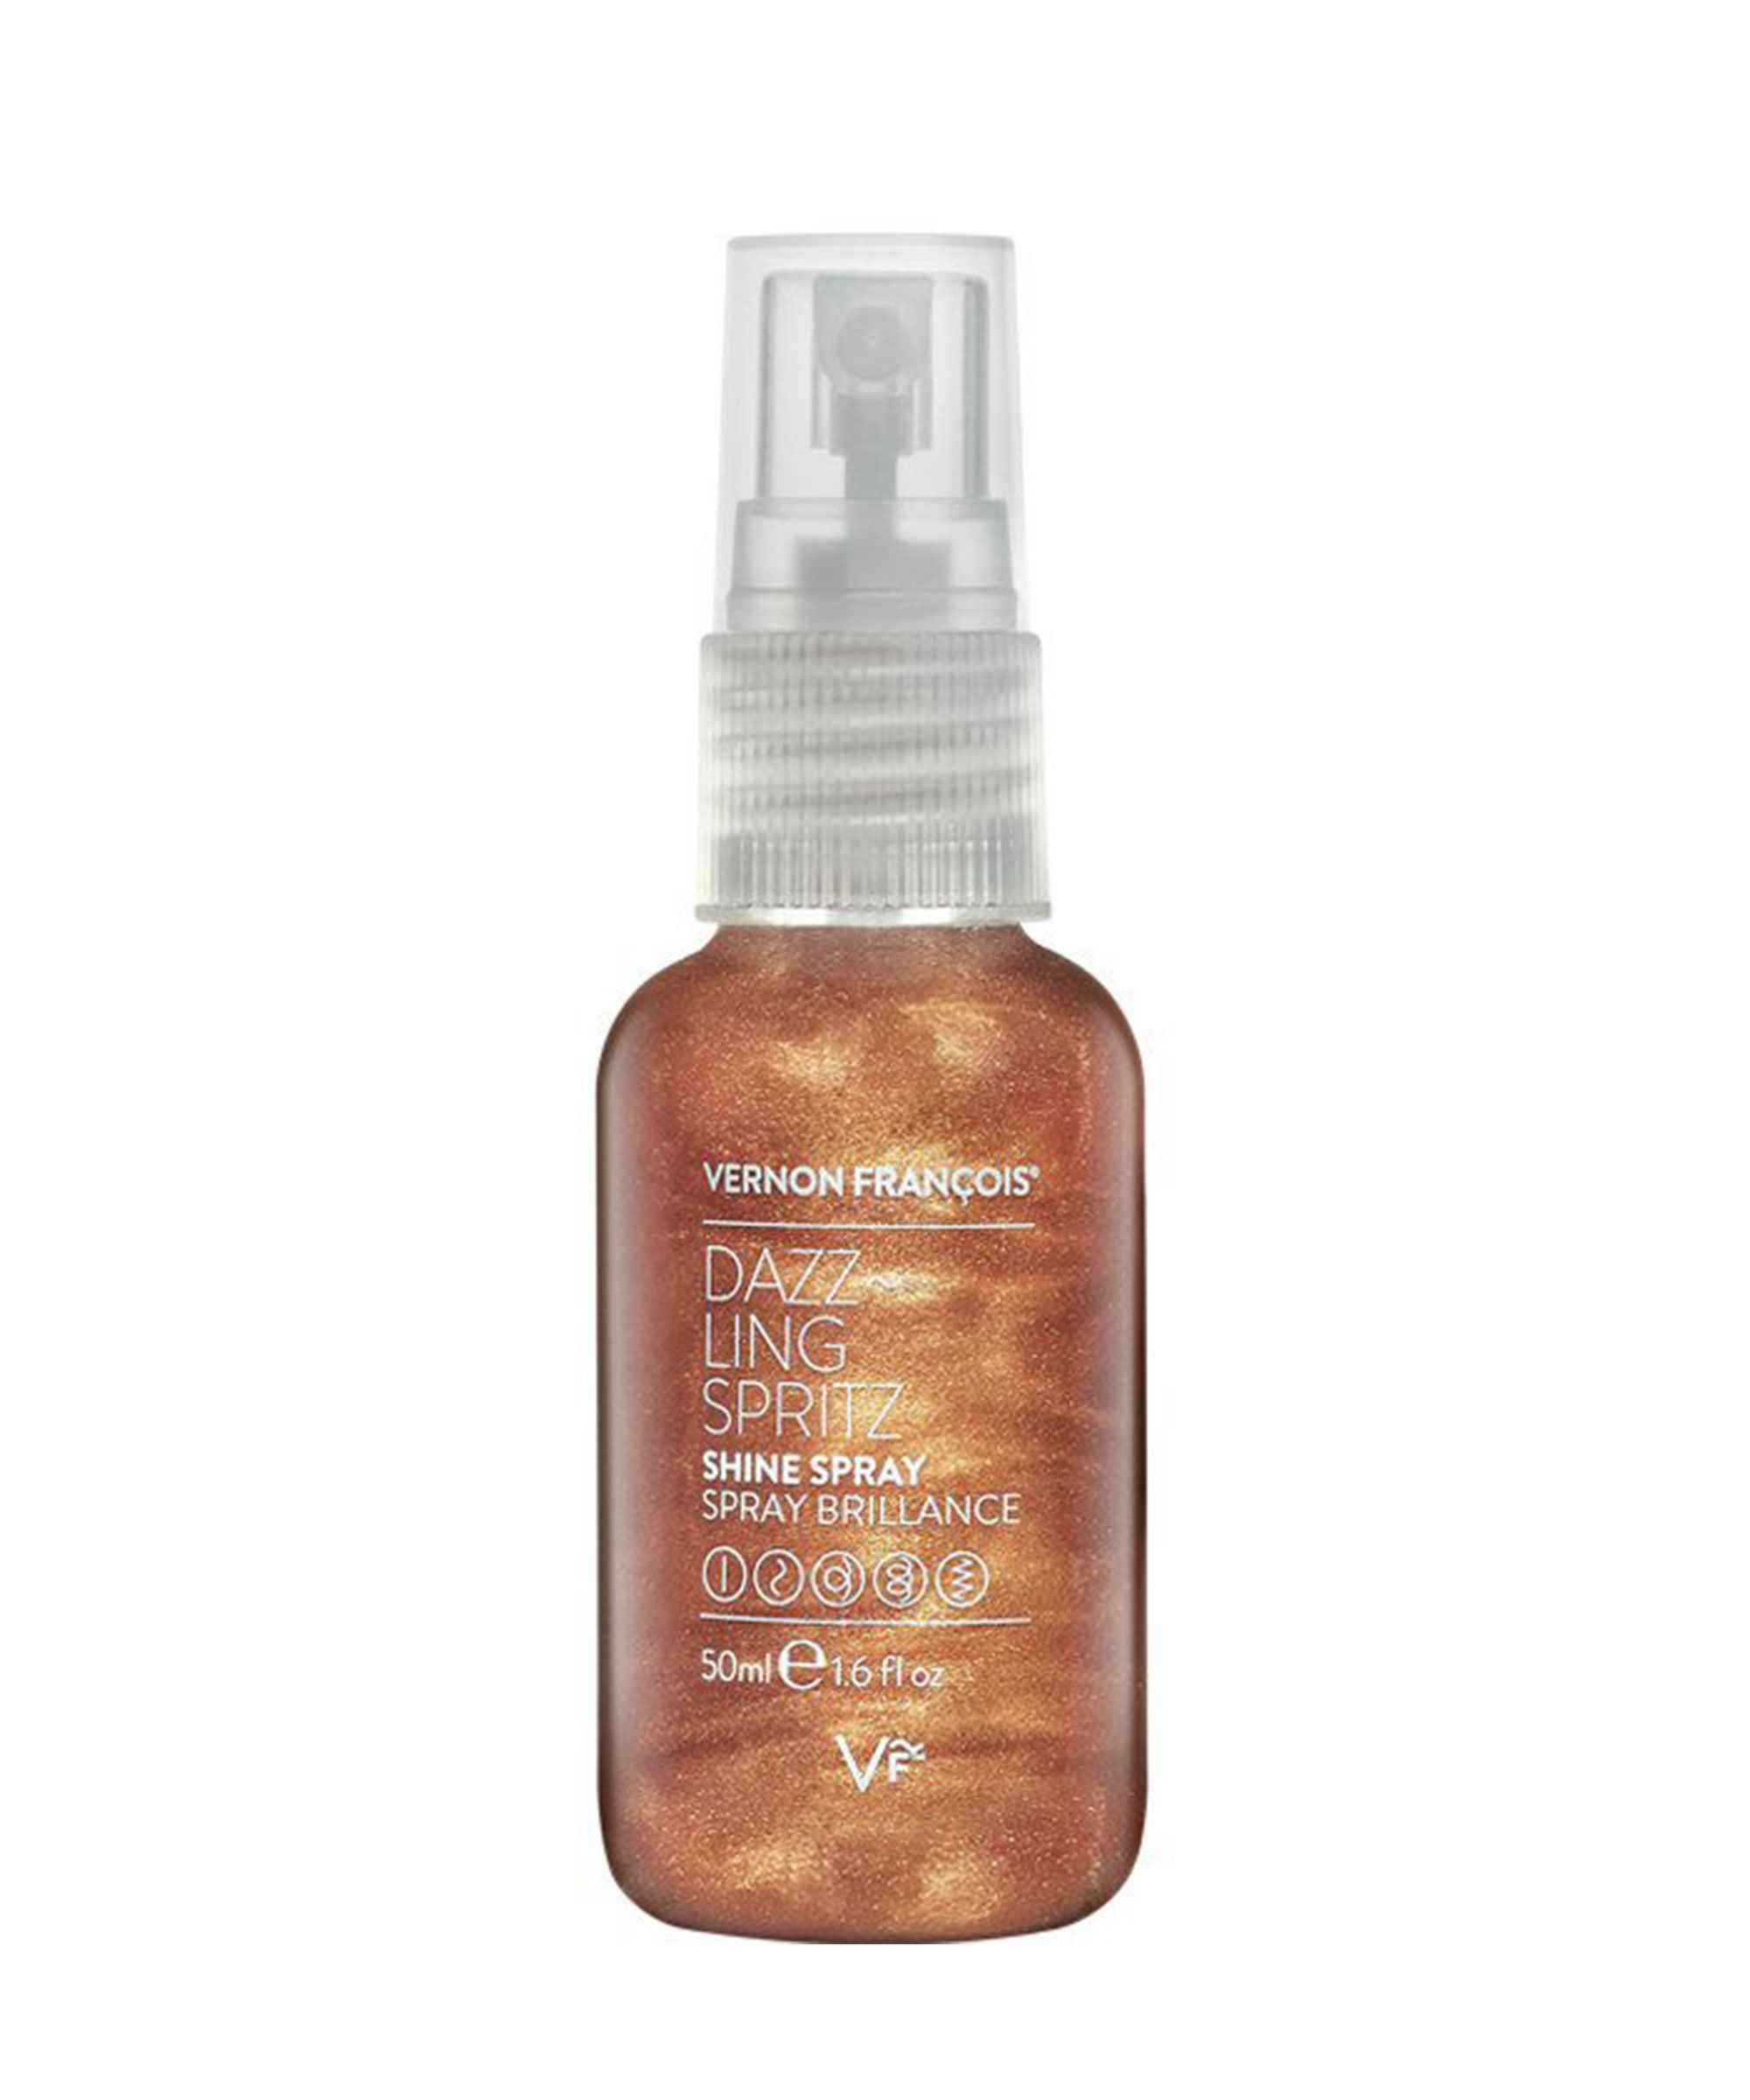 Grab This BestSeller Hair Strobing Spray Before It Sells Out